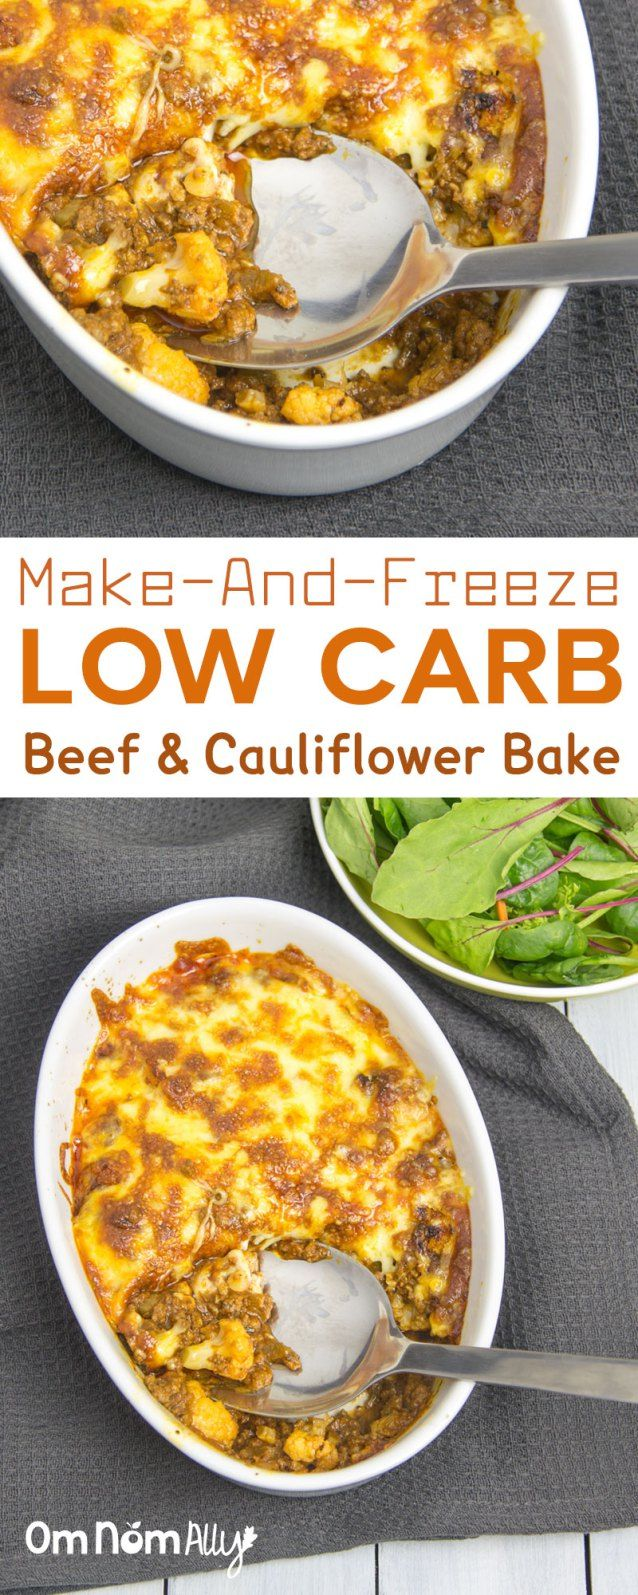 (Make-And-Freeze) Low Carb Beef & Cauliflower 'Pasta' Bake